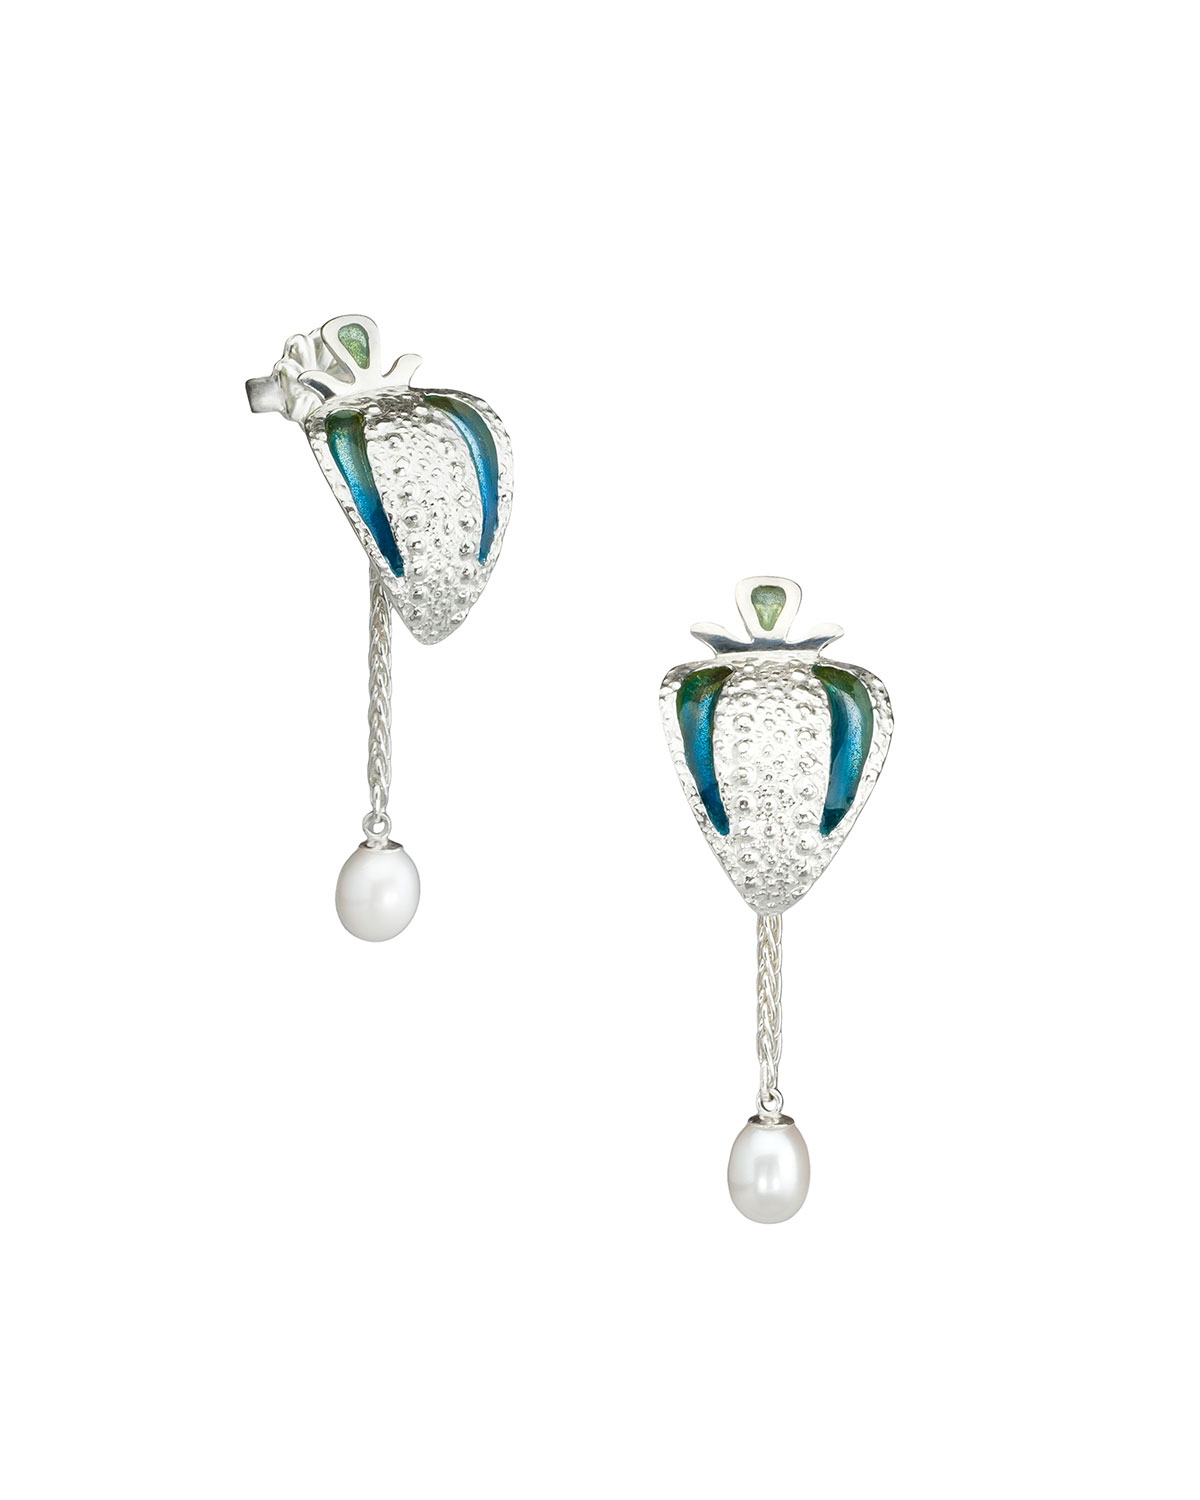 2017-03-Mary-Lynn-Podiluk-Argot-Earrings-P1-07a.jpg